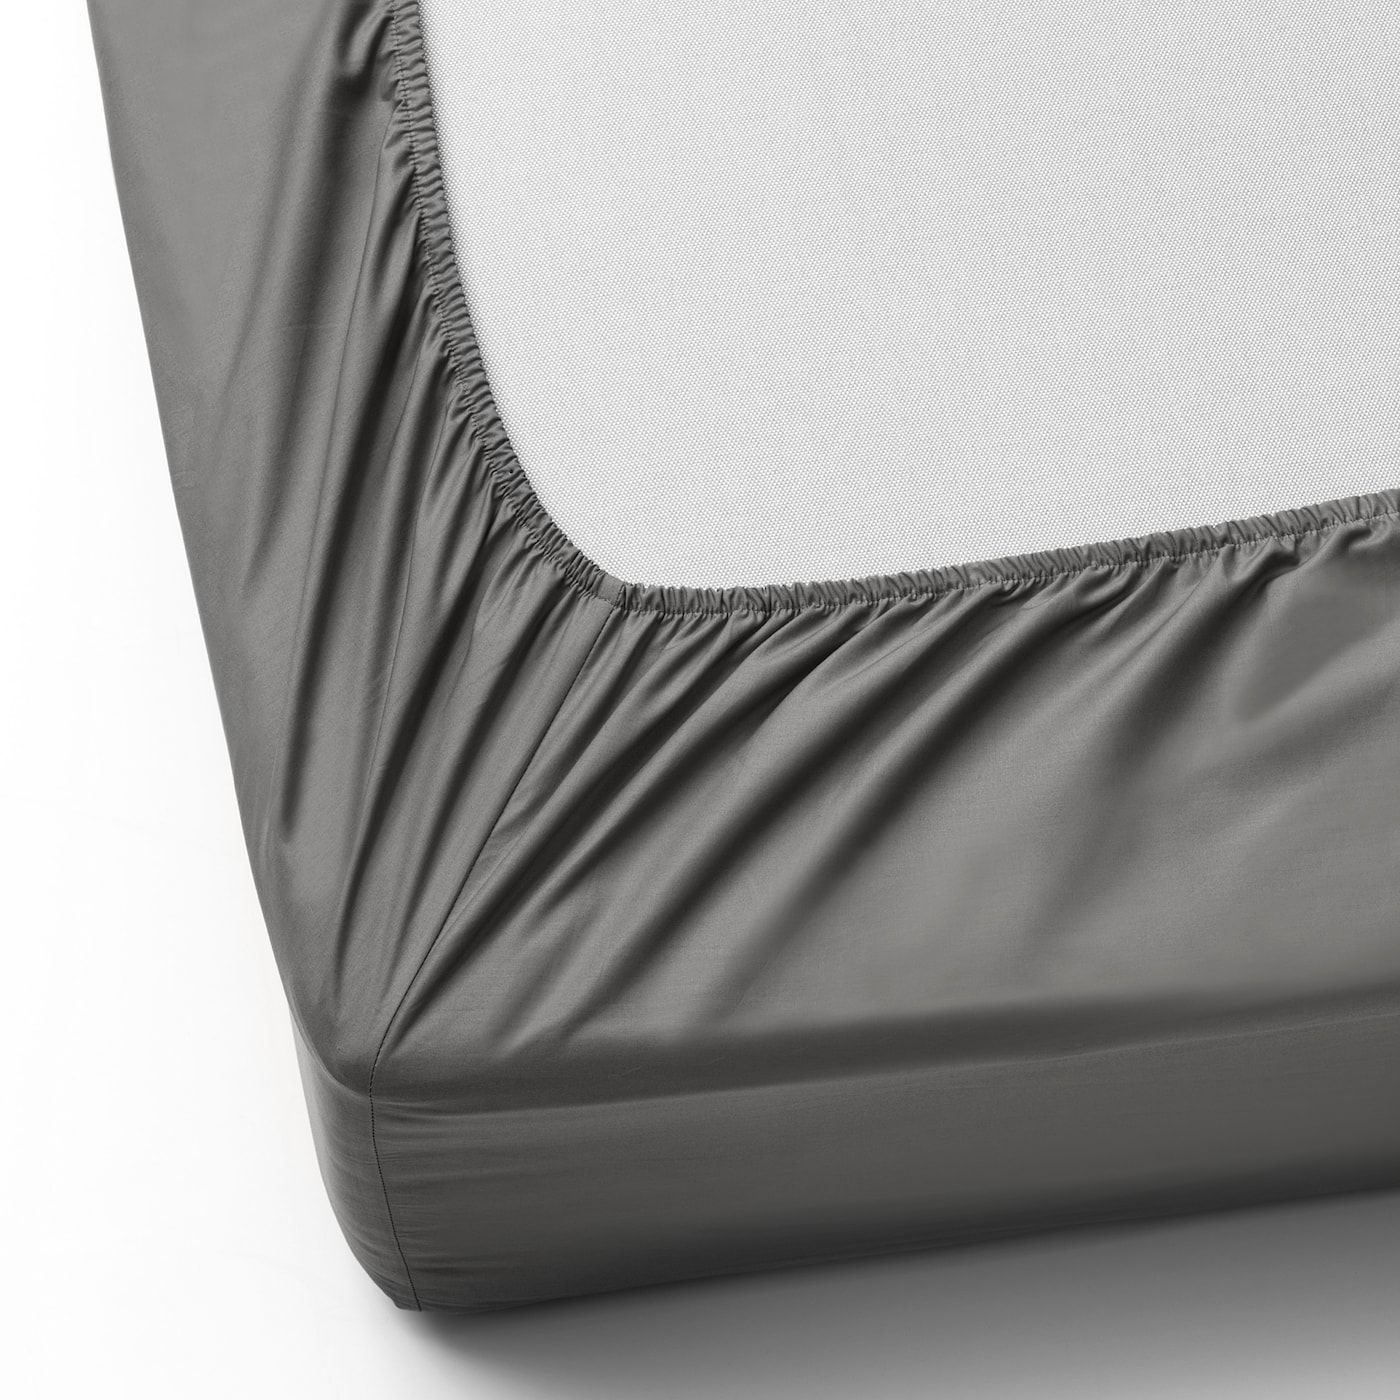 Ikea Ullvide Gray Fitted Sheet In 2020 Spannbettlaken Bettlaken